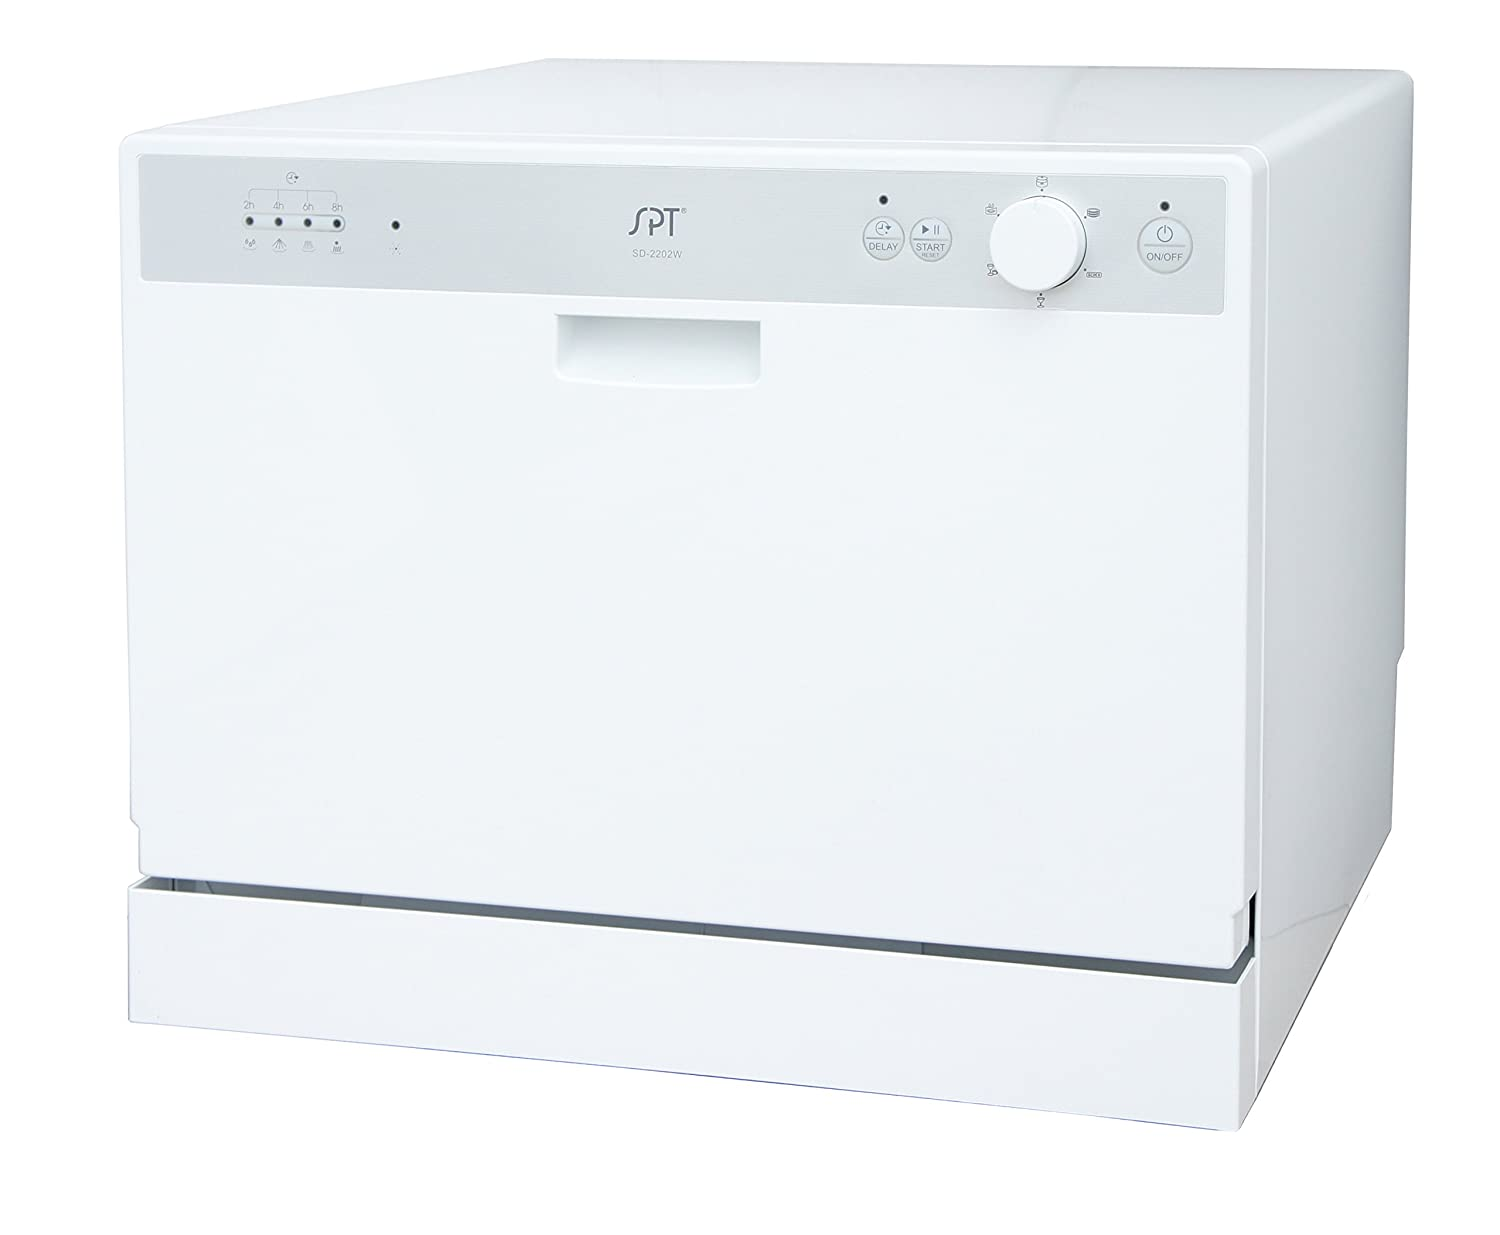 SPT SD-2202W Countertop Dishwasher with Delay Start - White